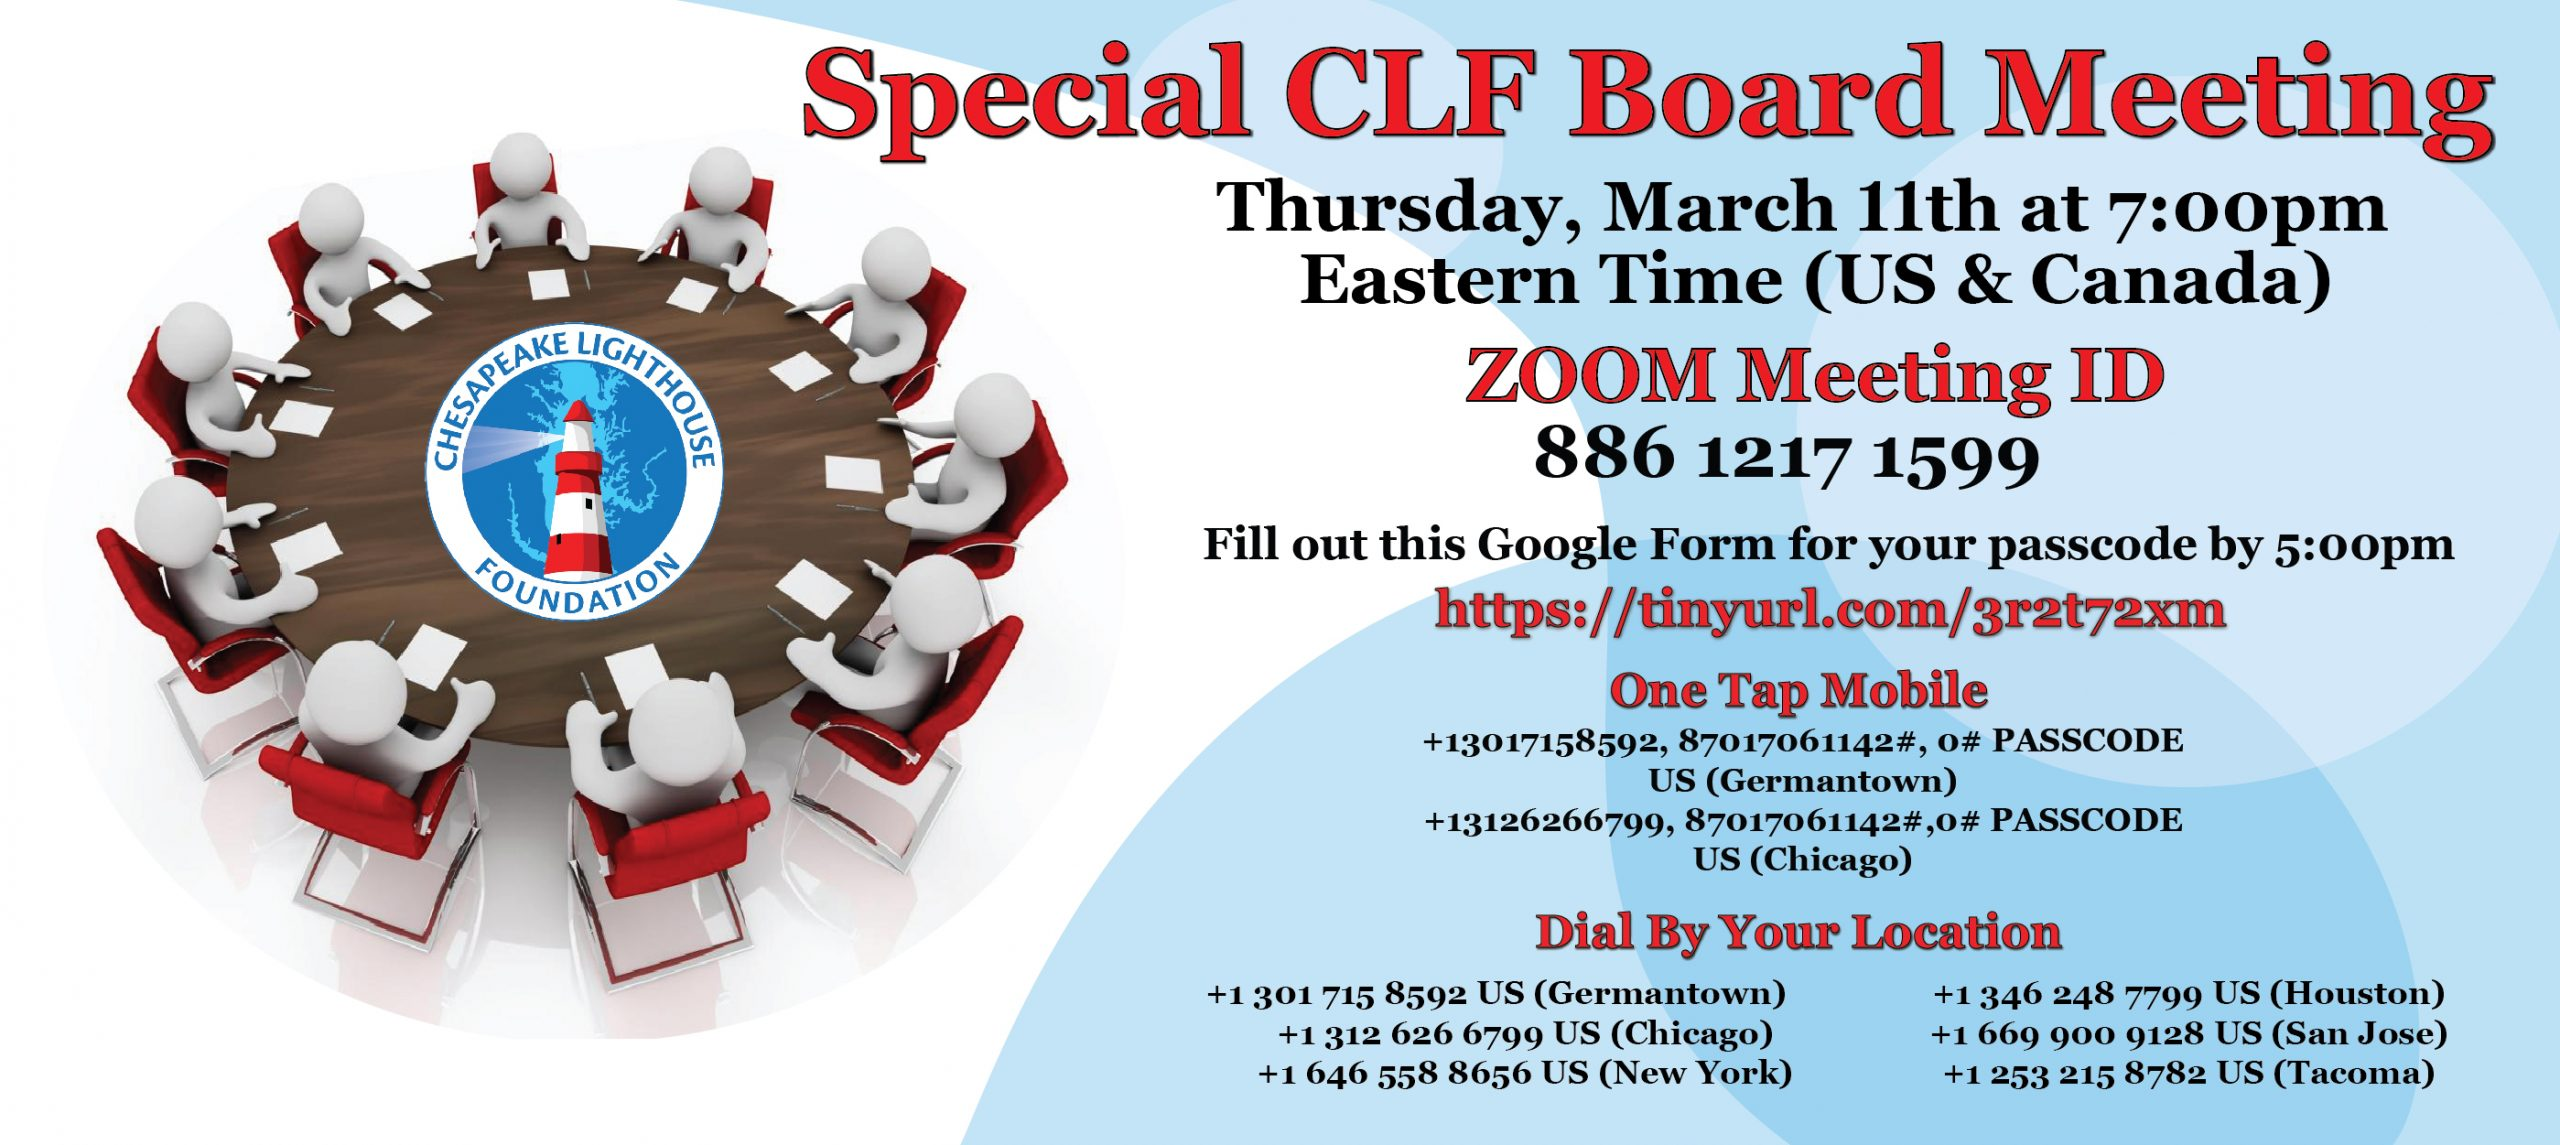 3.11.21 CLF Board Meeting